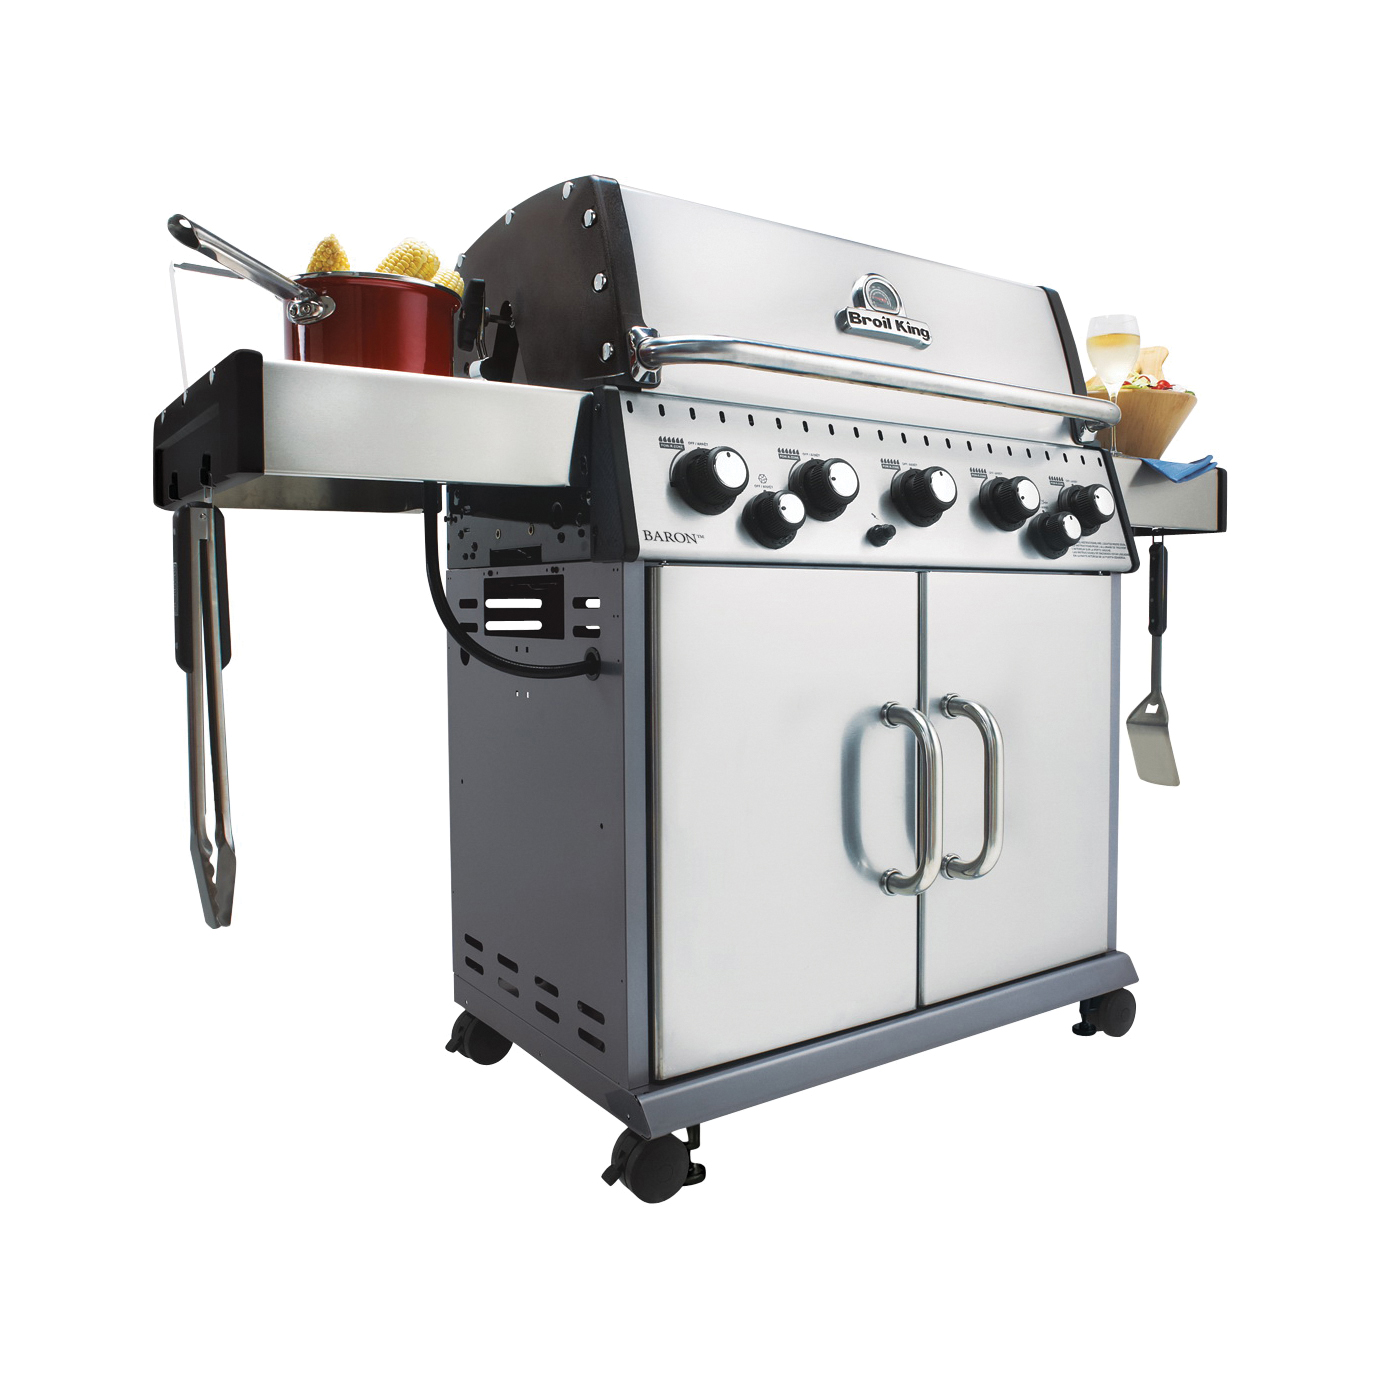 Picture of Broil King Baron 923584 Gas Grill, 50000 Btu/hr BTU, Liquid Propane, 5 -Burner, 555 sq-in Primary Cooking Surface